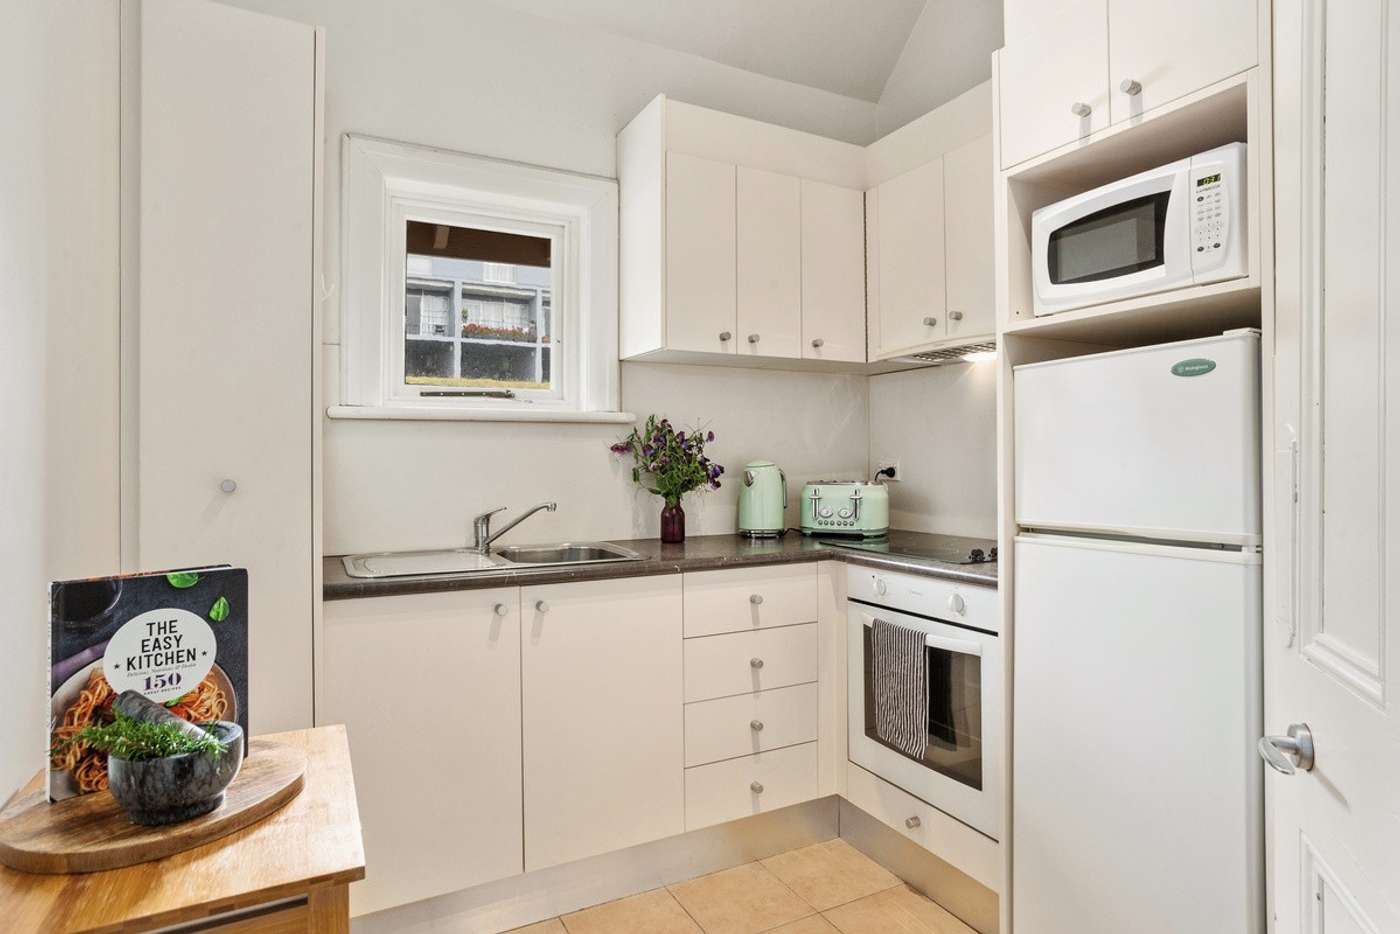 Sixth view of Homely apartment listing, 8/84 Upper Fitzroy Crescent, South Hobart TAS 7004